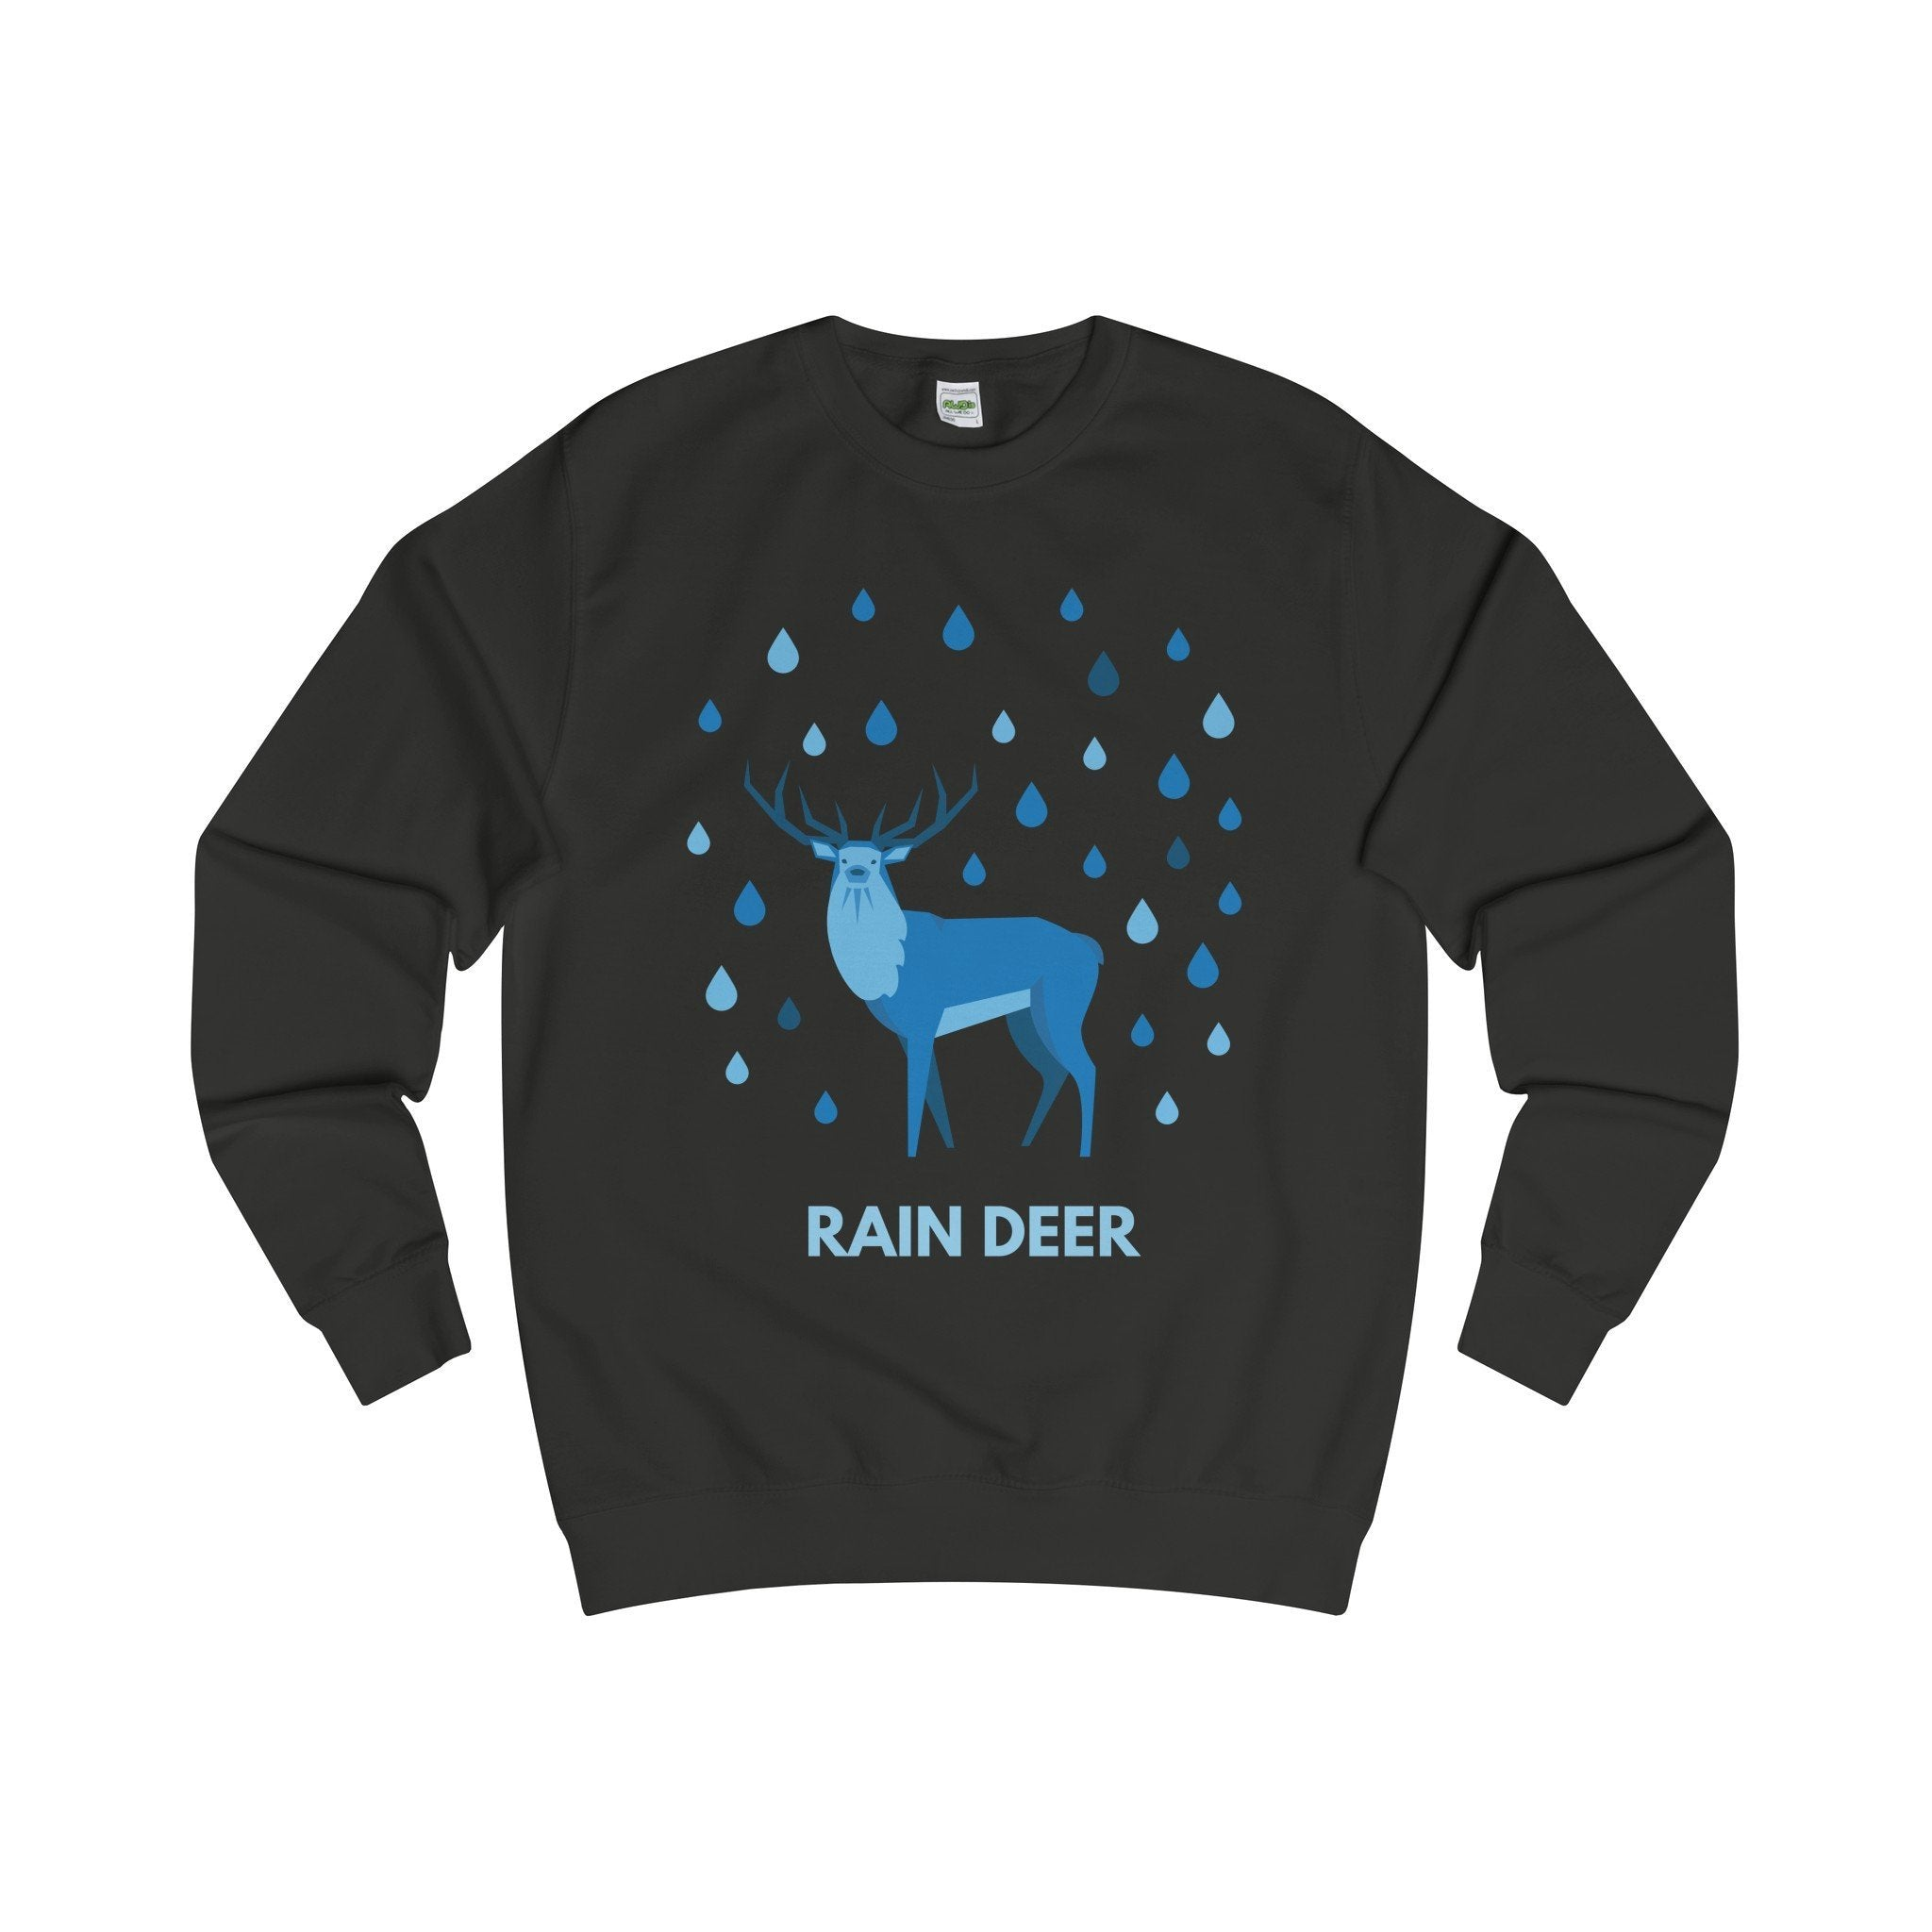 Rain Deer Christmas Jumper-Sweatshirt-Jolly Christmas Jumper